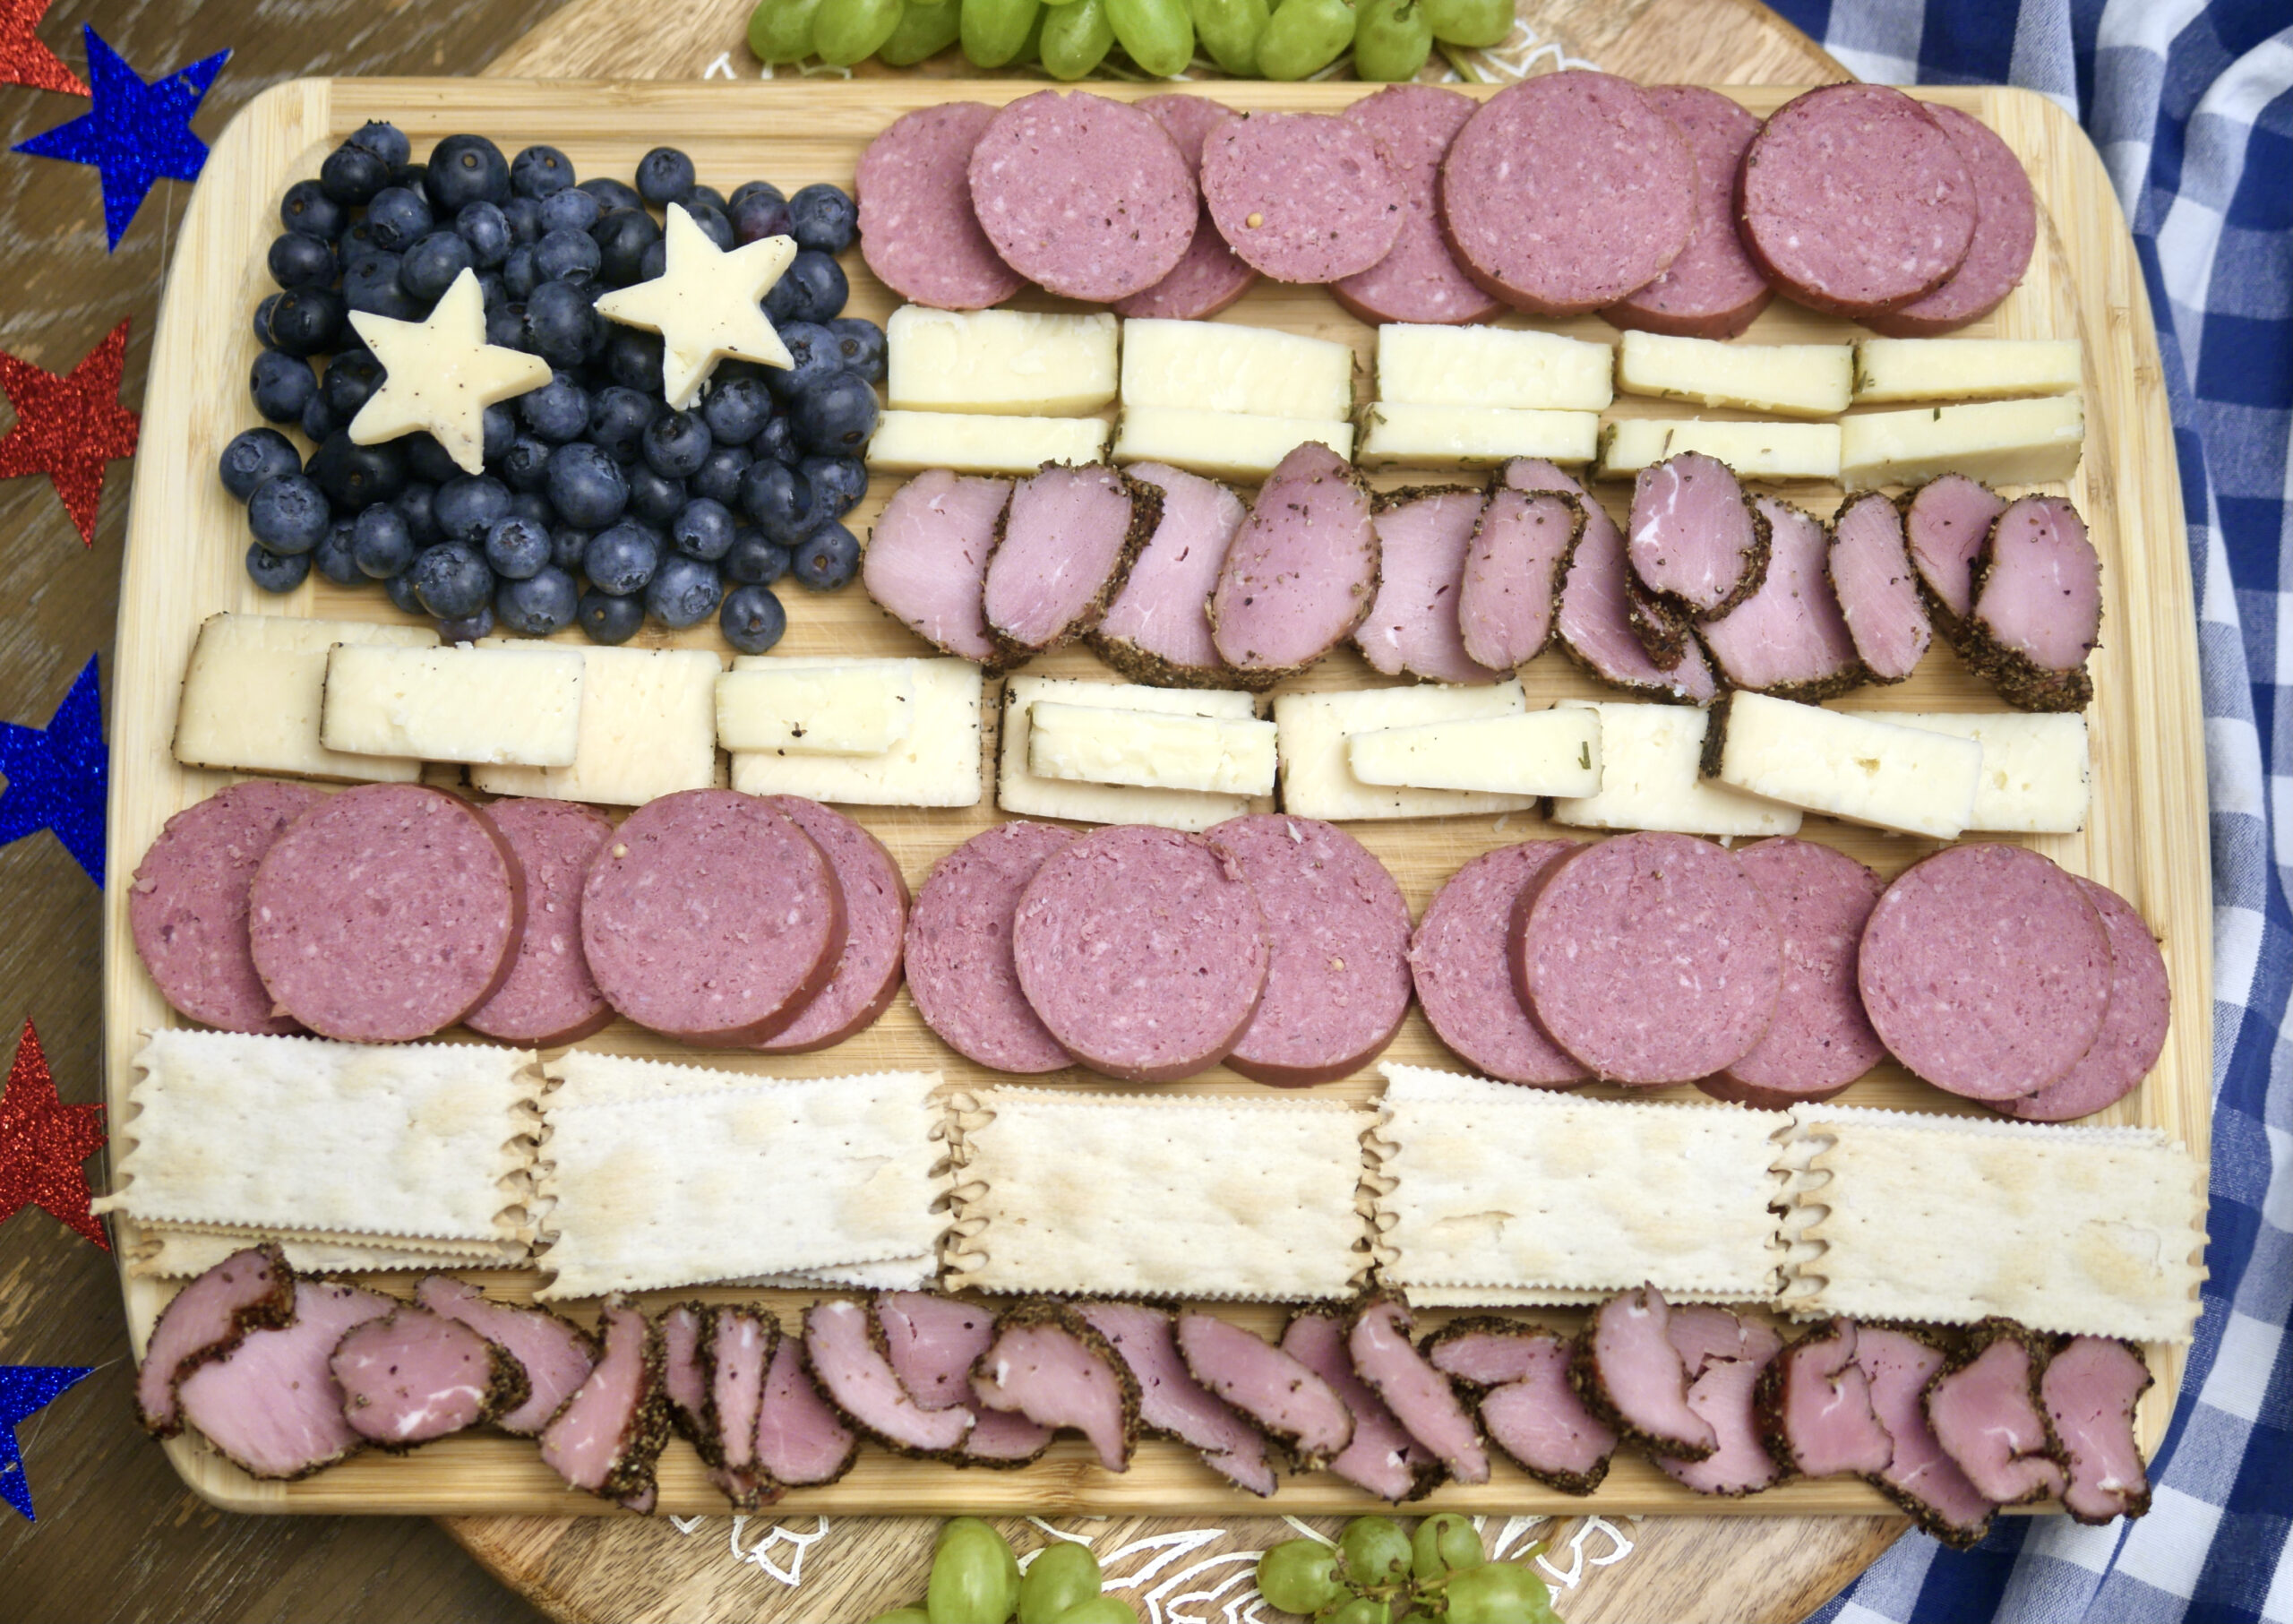 Stars and Stripes Charcuterie Spread